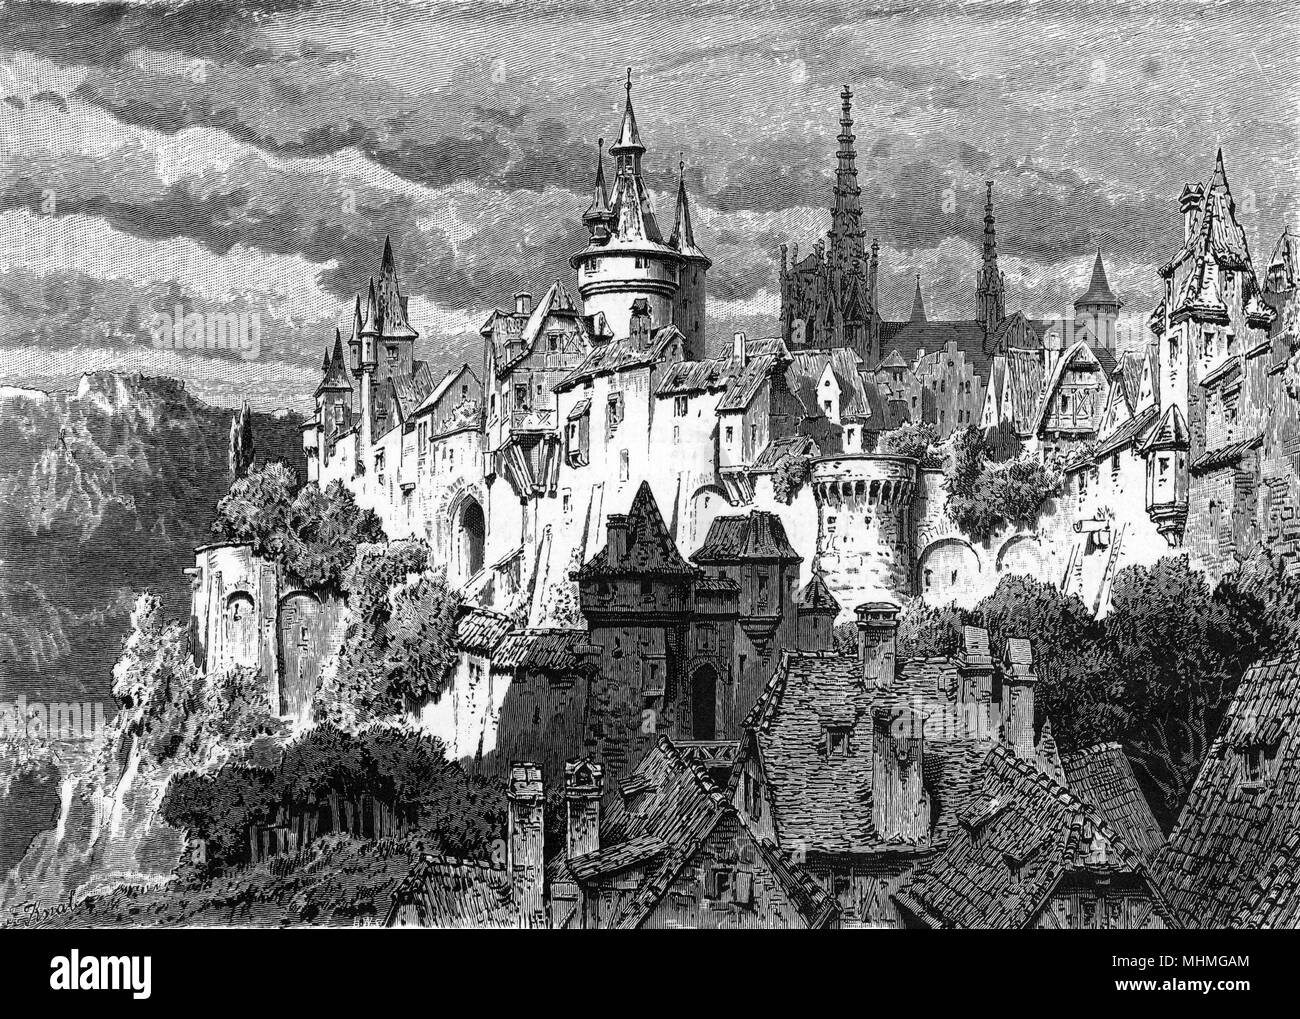 A German walled town with gates and ramparts.        Date: medieval - Stock Image